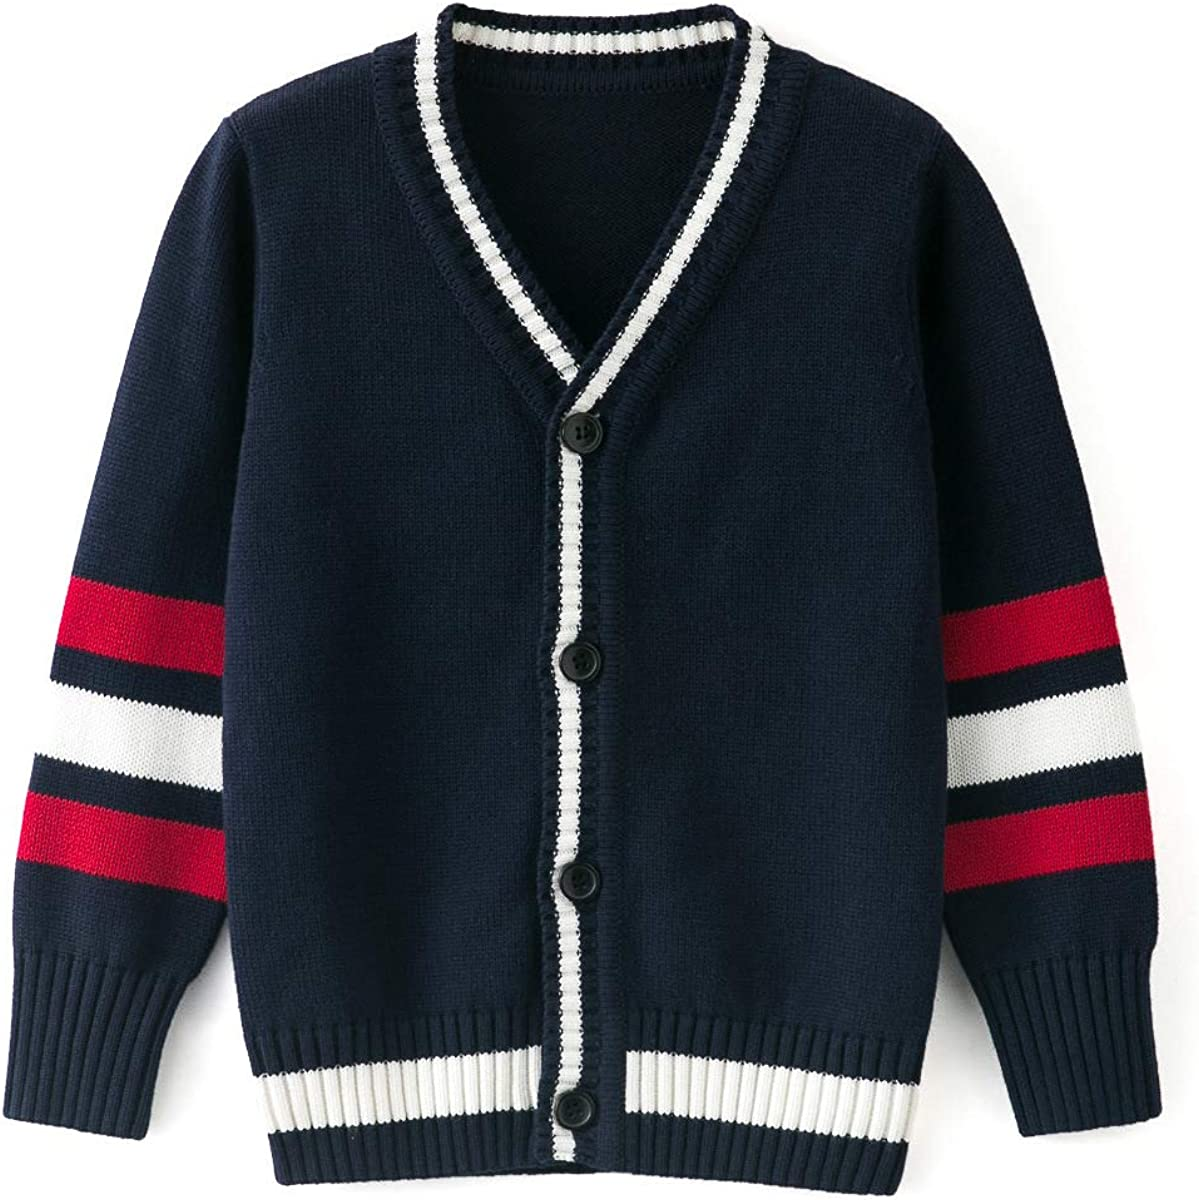 Curipeer Boys' Cardigan V-Neck Knitted Sweater Fall Button Up School Uniform 4-14Y: Clothing, Shoes & Jewelry